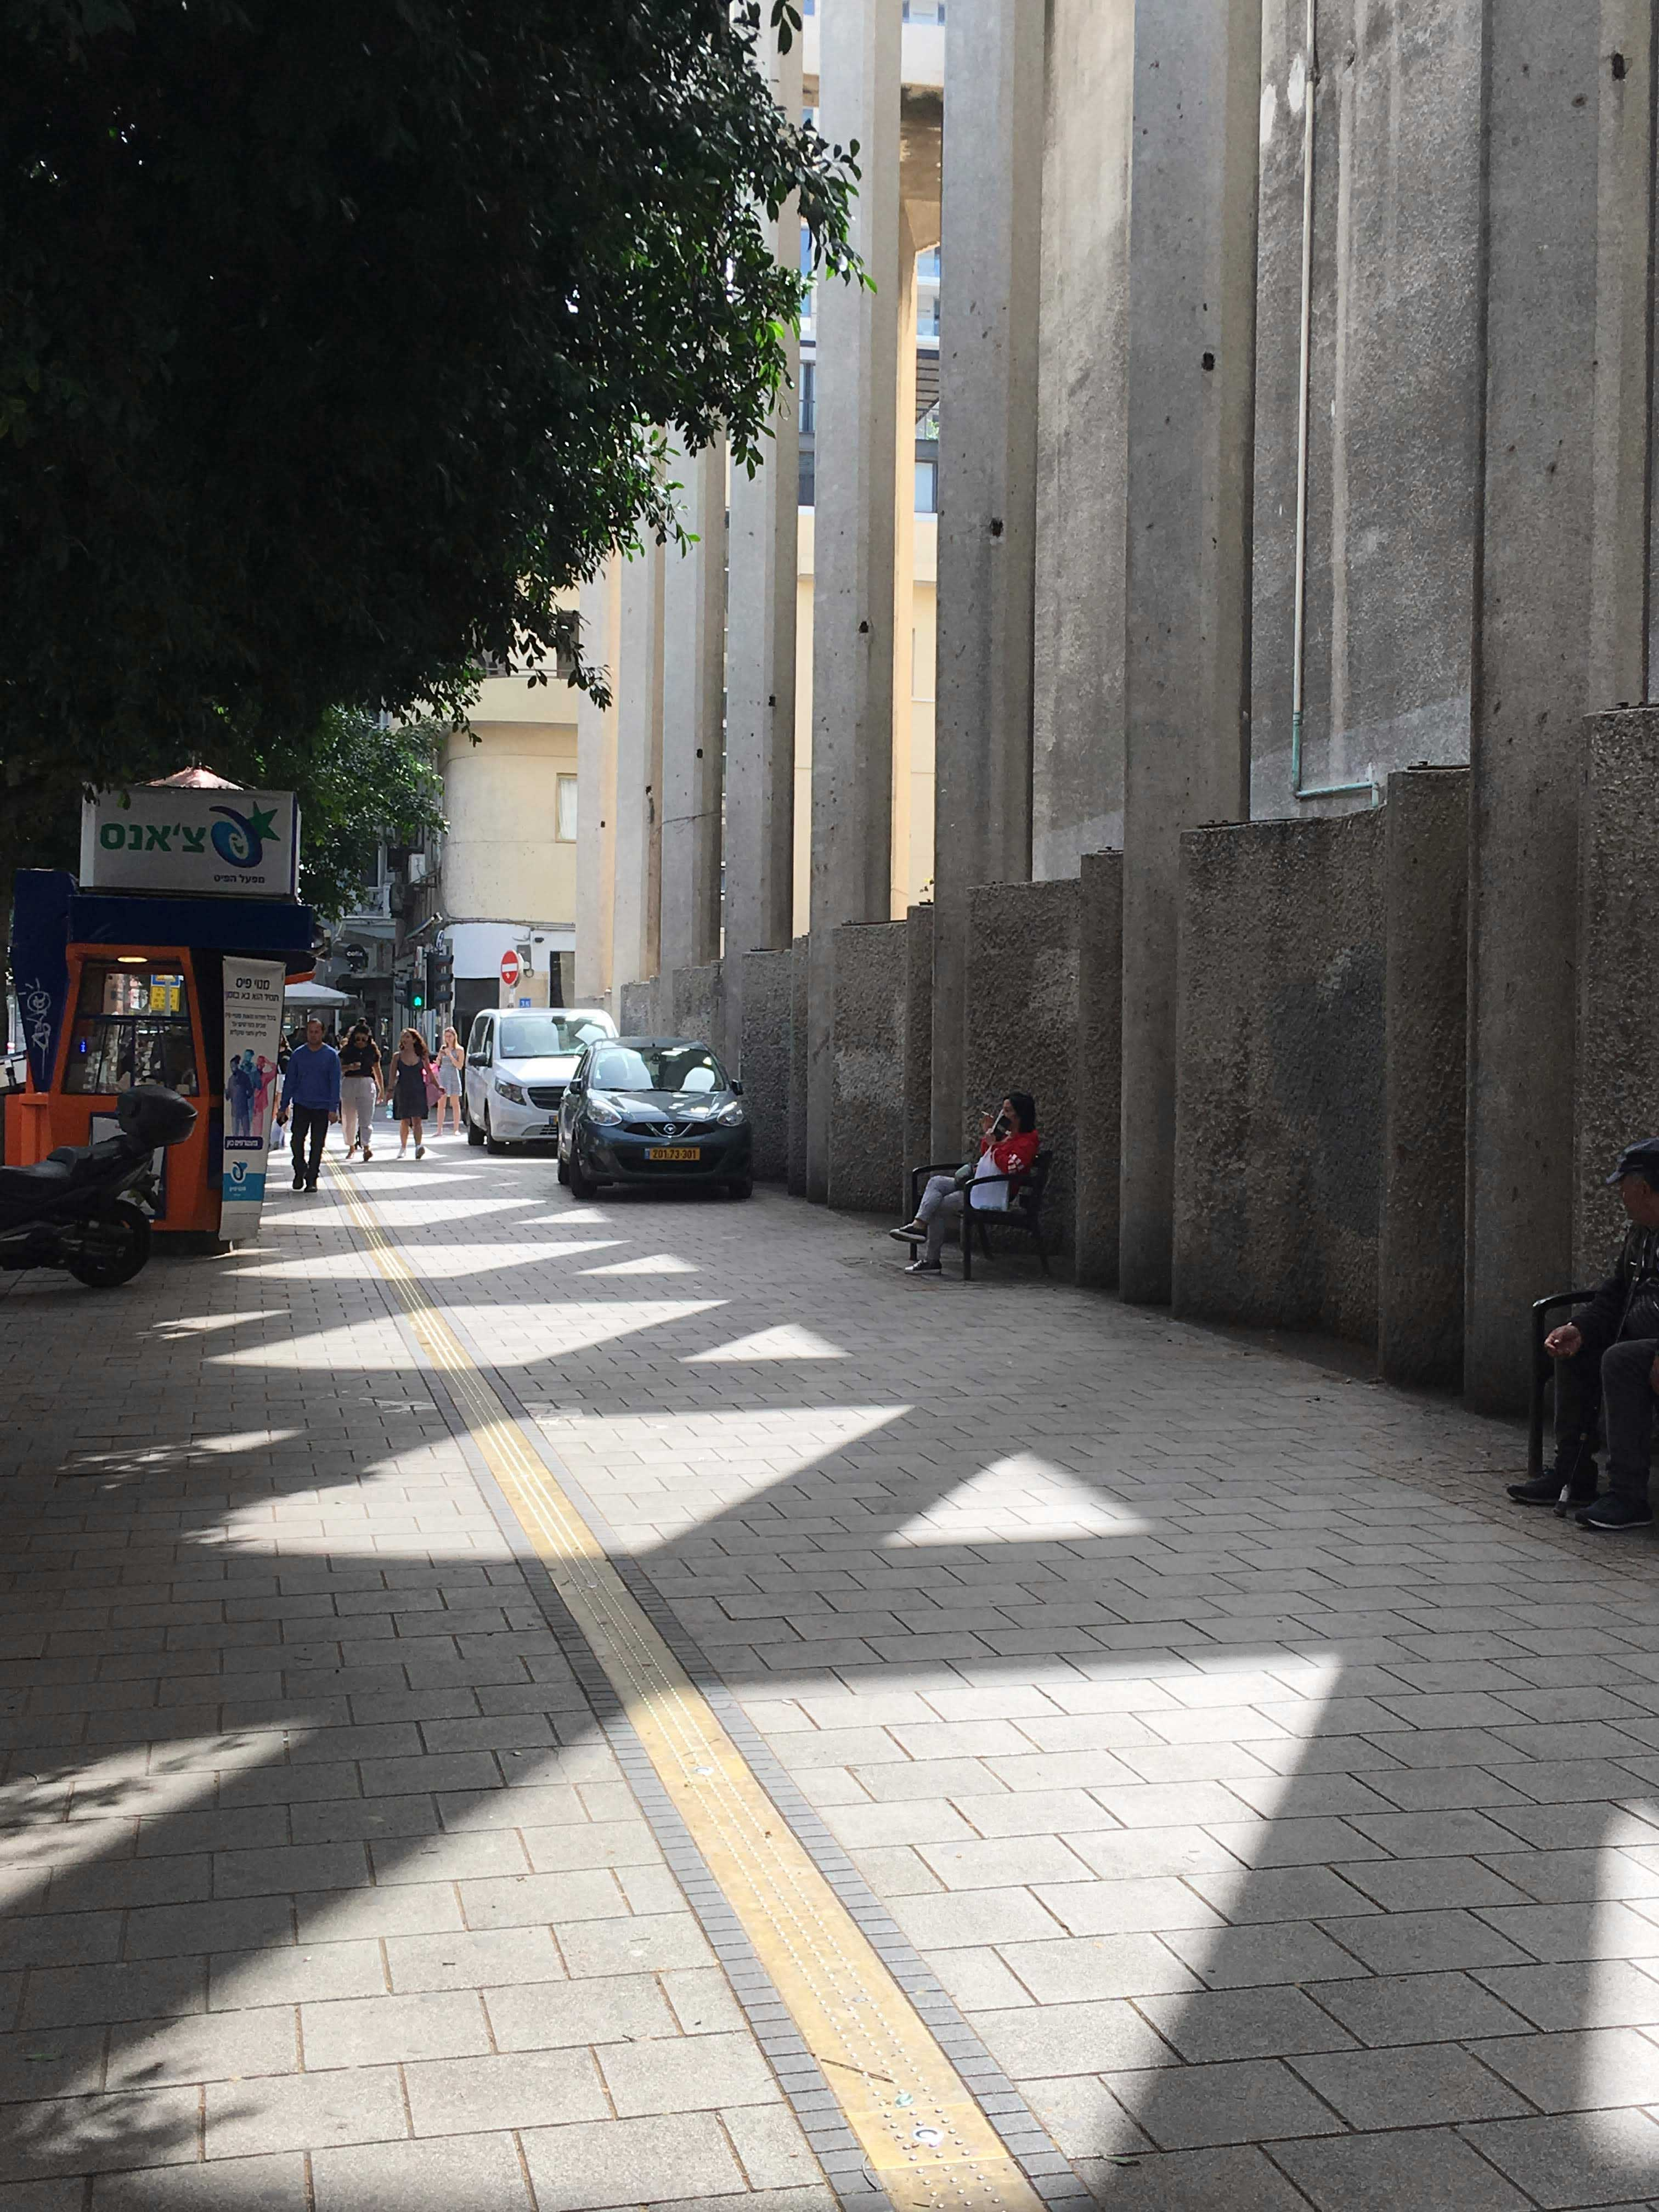 To the Great Synagogue on Tel Aviv audio tour The Trail of Independence: Tracing the origins of modern Tel Aviv